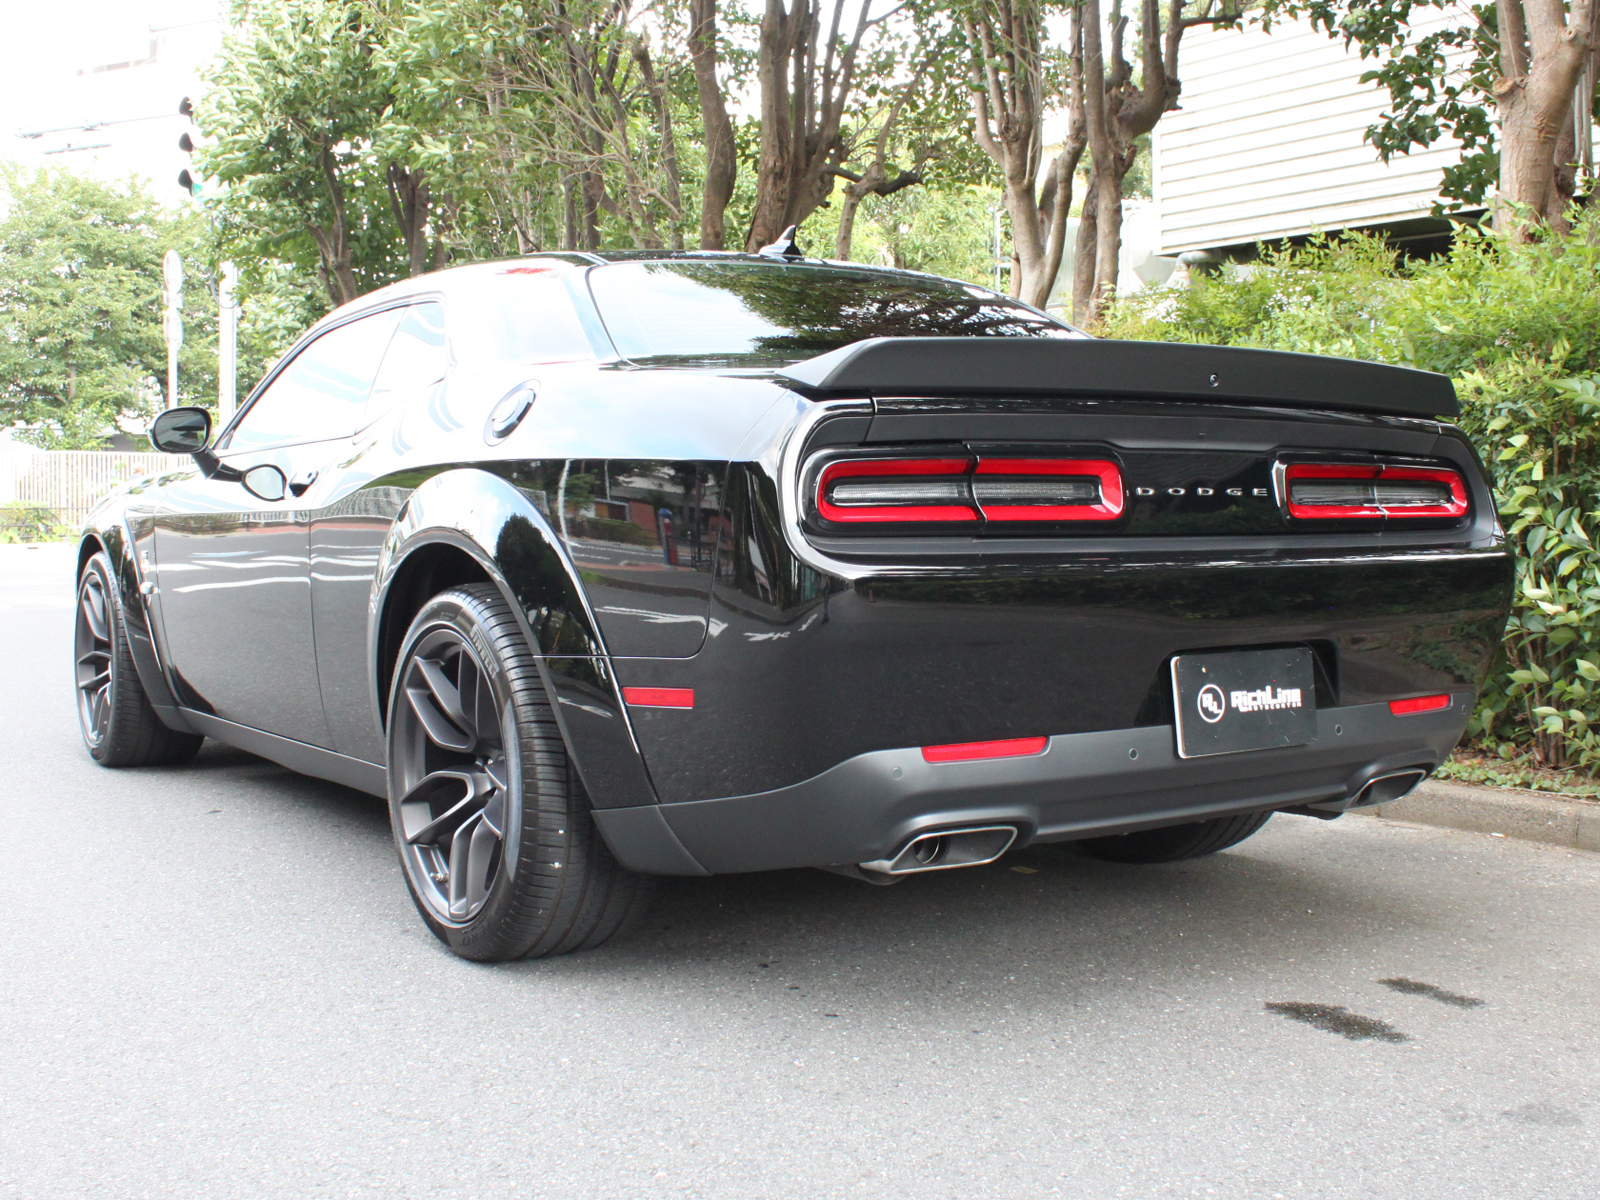 Challenger R/T Scat Pack 392 Widebodyリッチライン